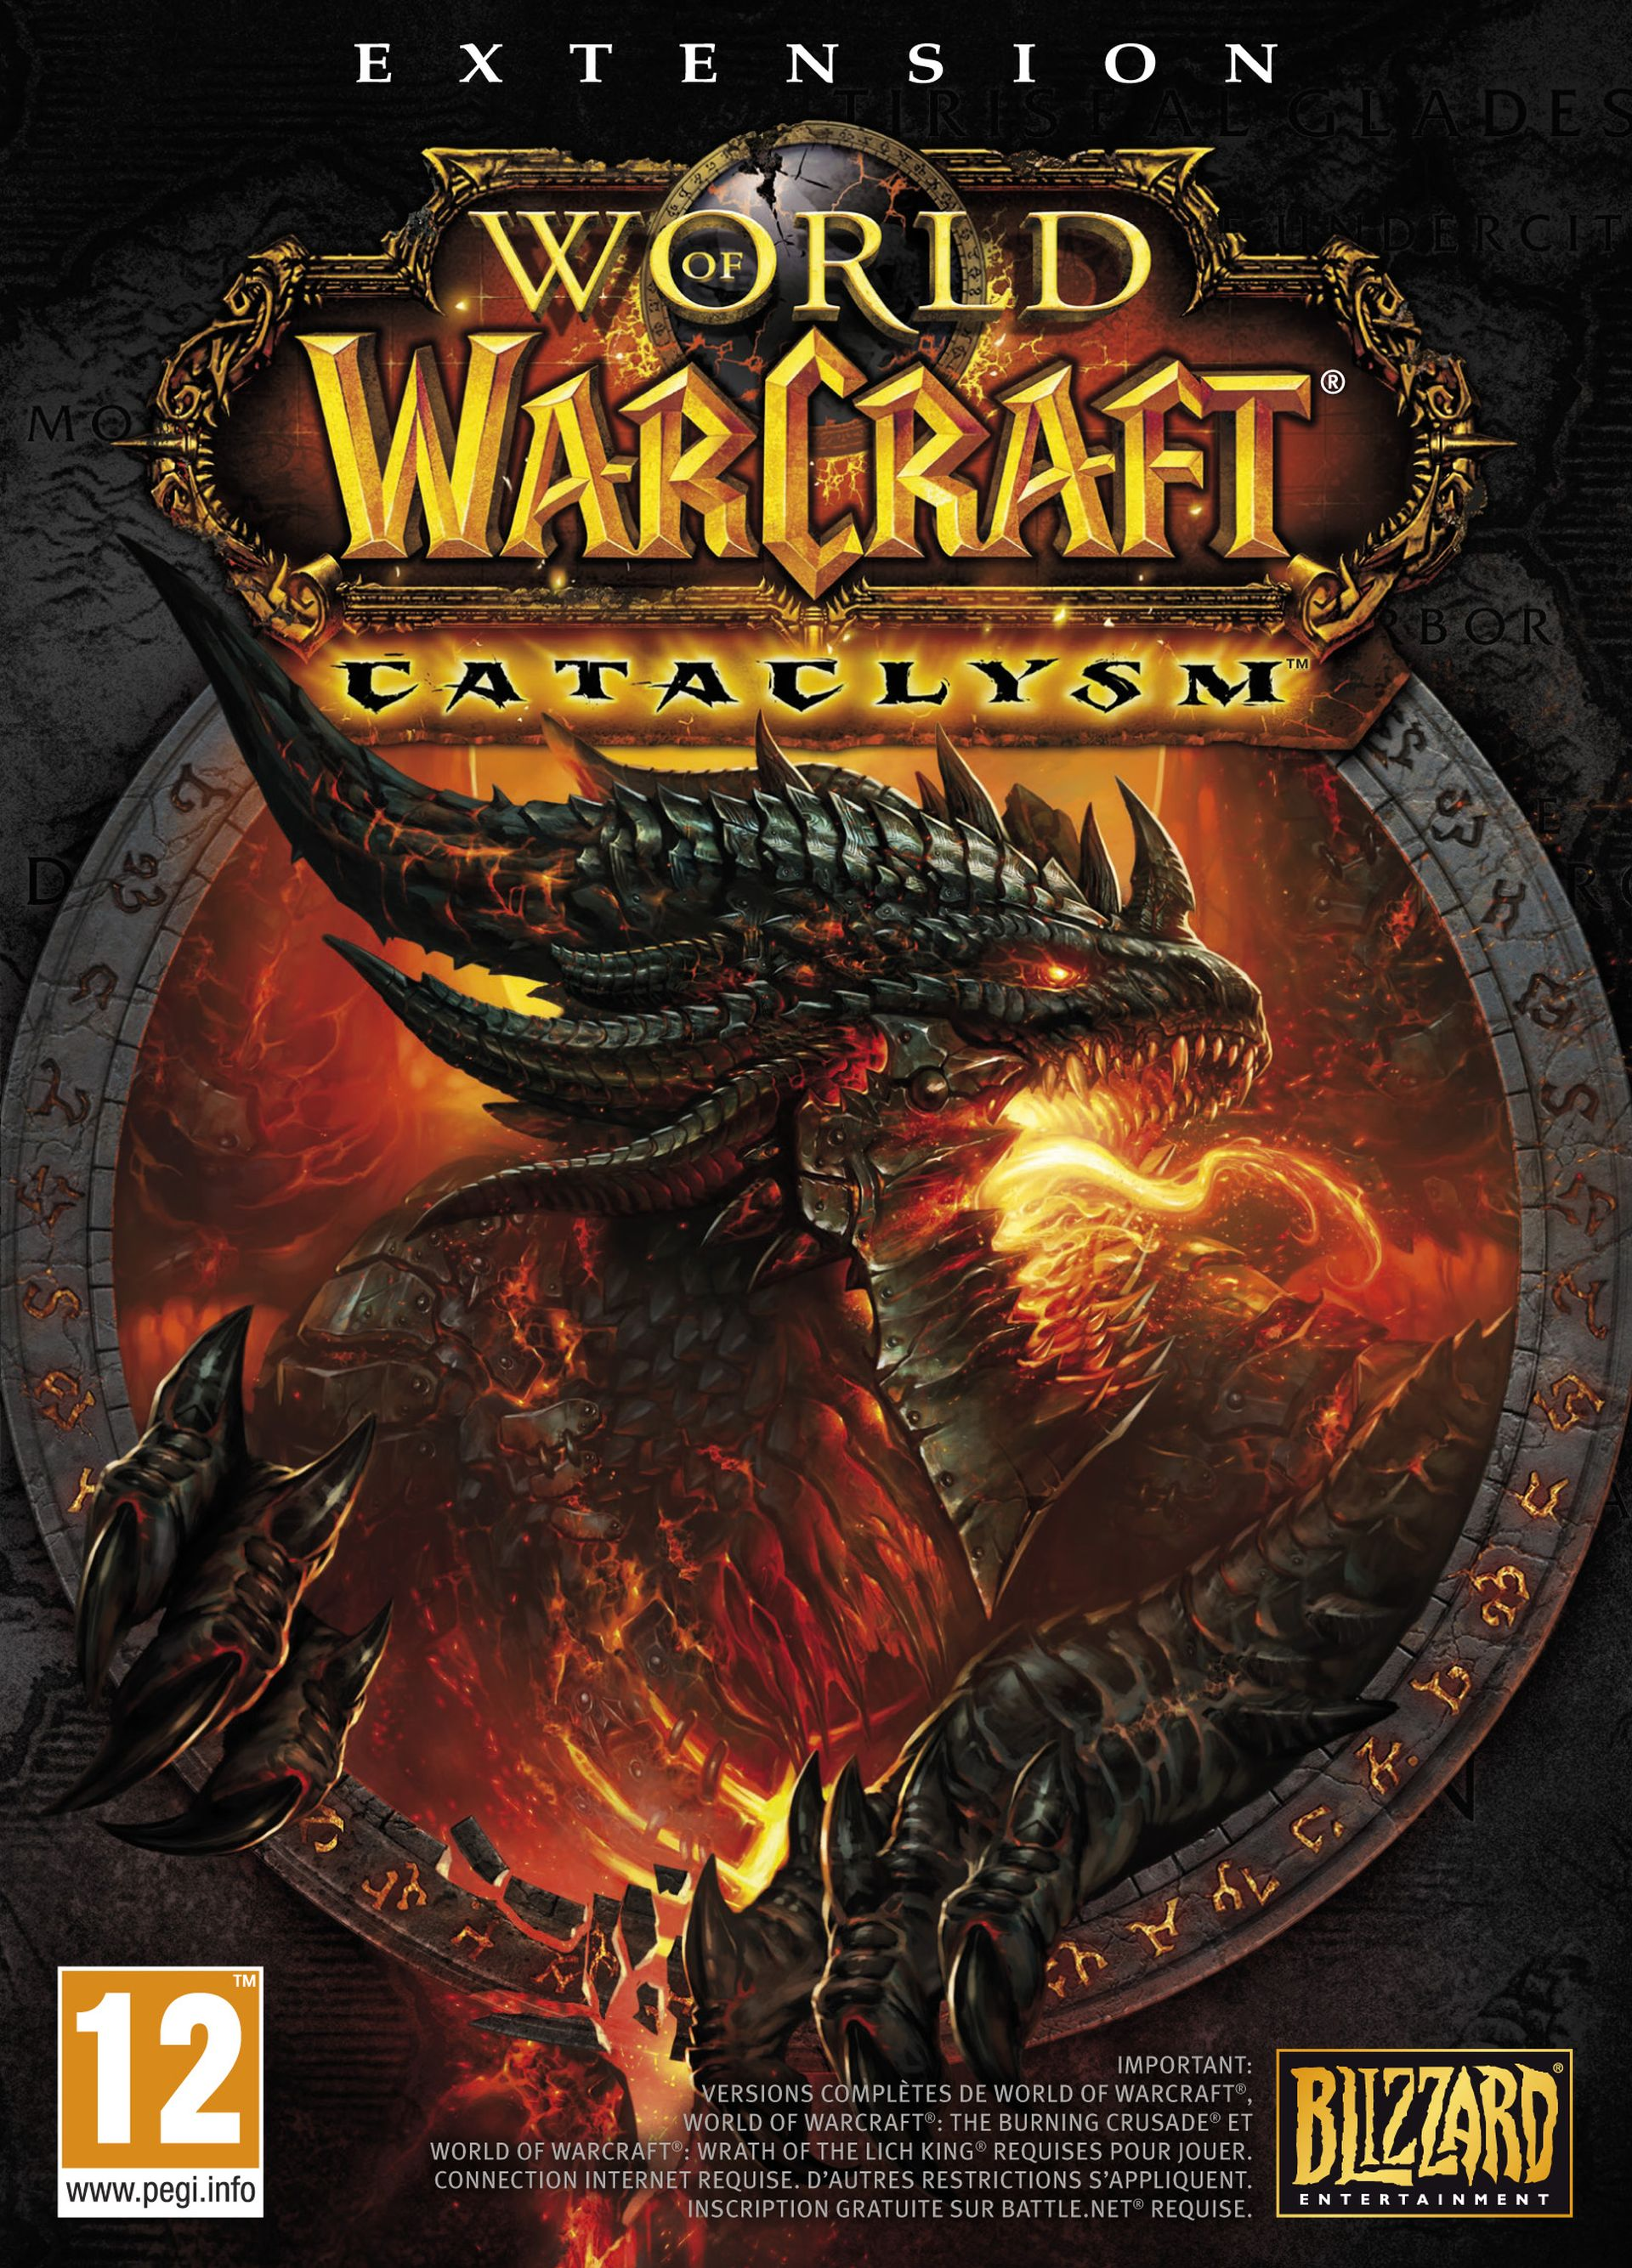 Warcraft Cataclysm Mage Guides! Free